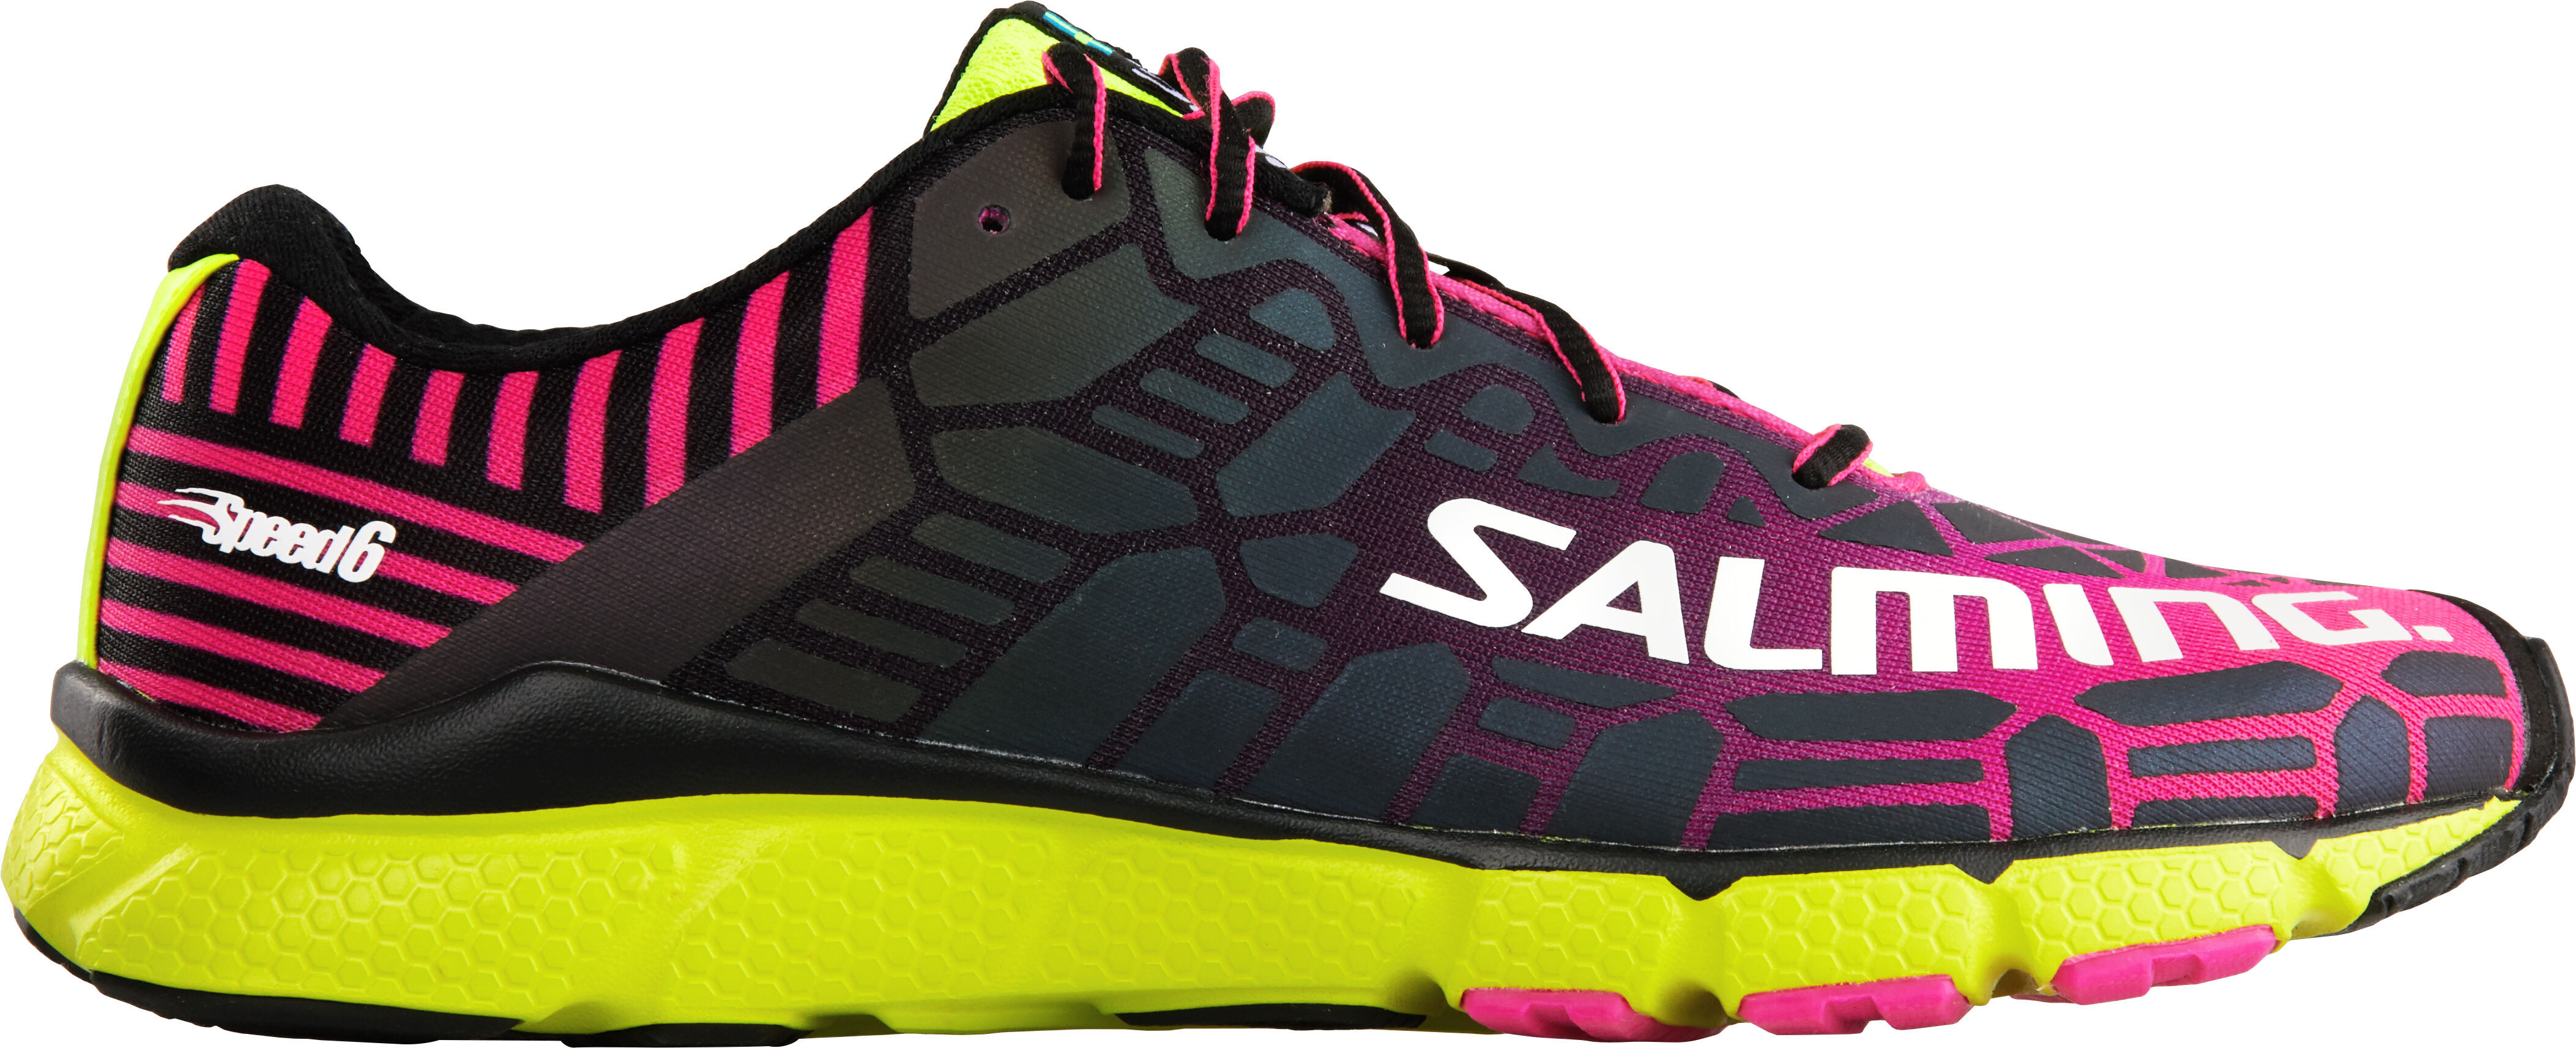 fb1fa1d21ca Salming W's Speed 6 Shoes Fluo Pink/Flou Yellow - addnature.com